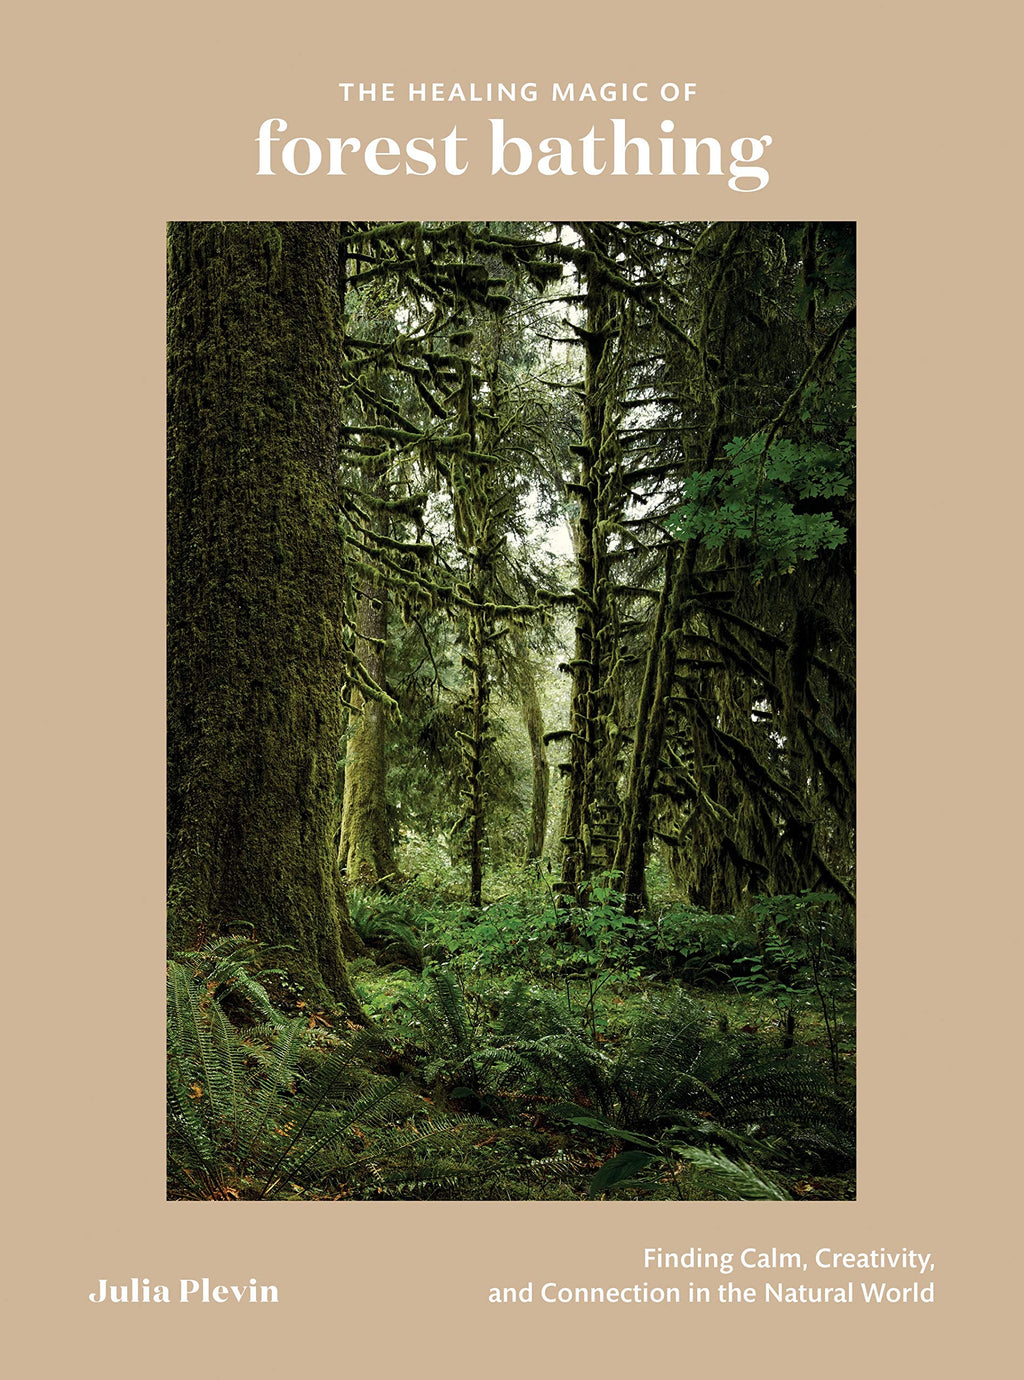 Healing Magic of Forest Bathing by Julia Plevin